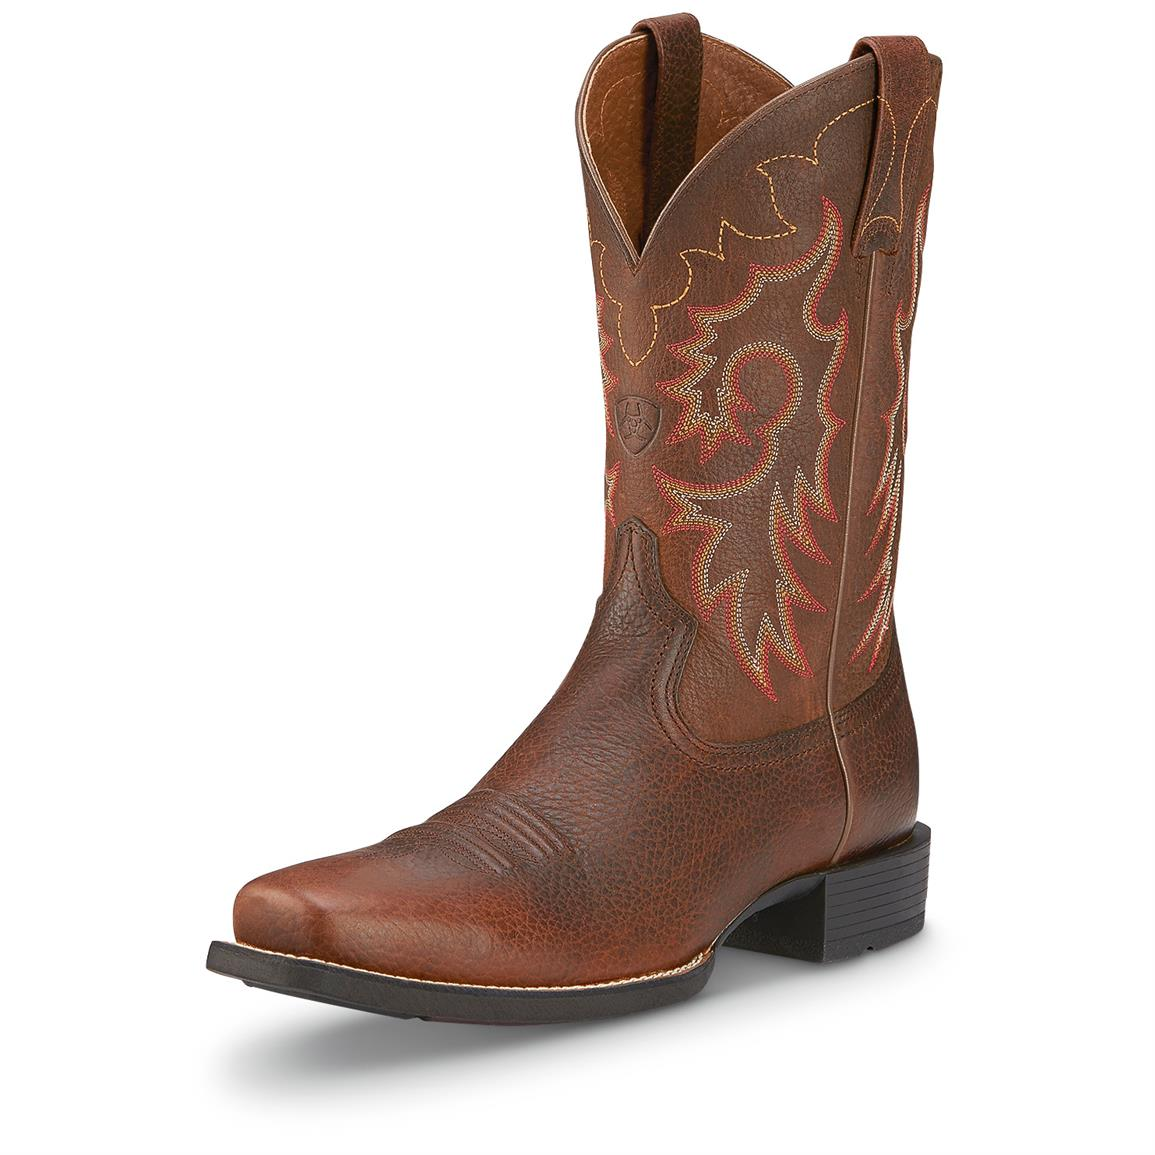 Ariat Men's Heritage Reinsman Cowboy Boots, Brown